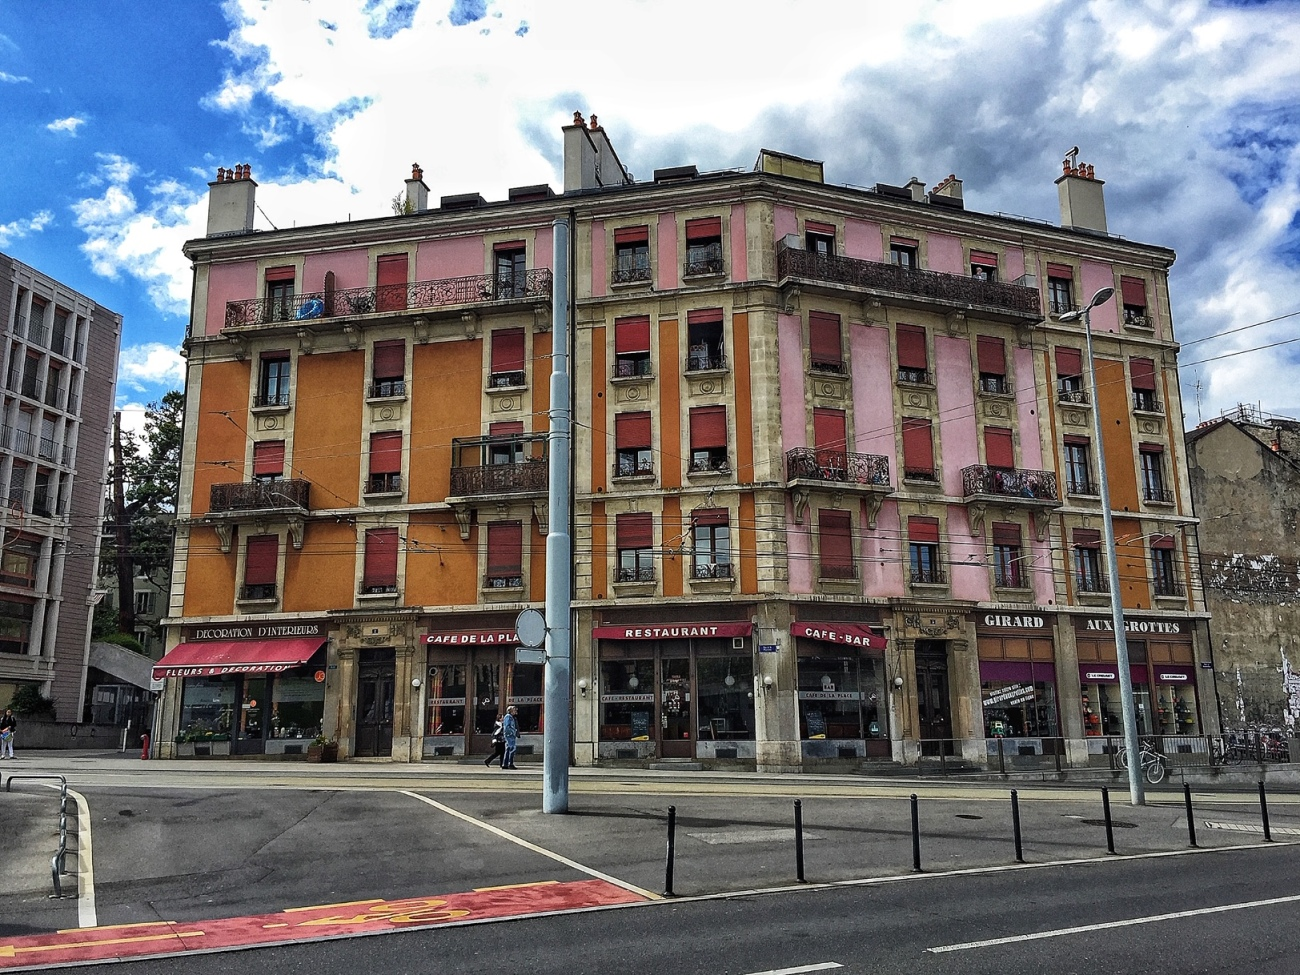 Colourful Building in Geneva